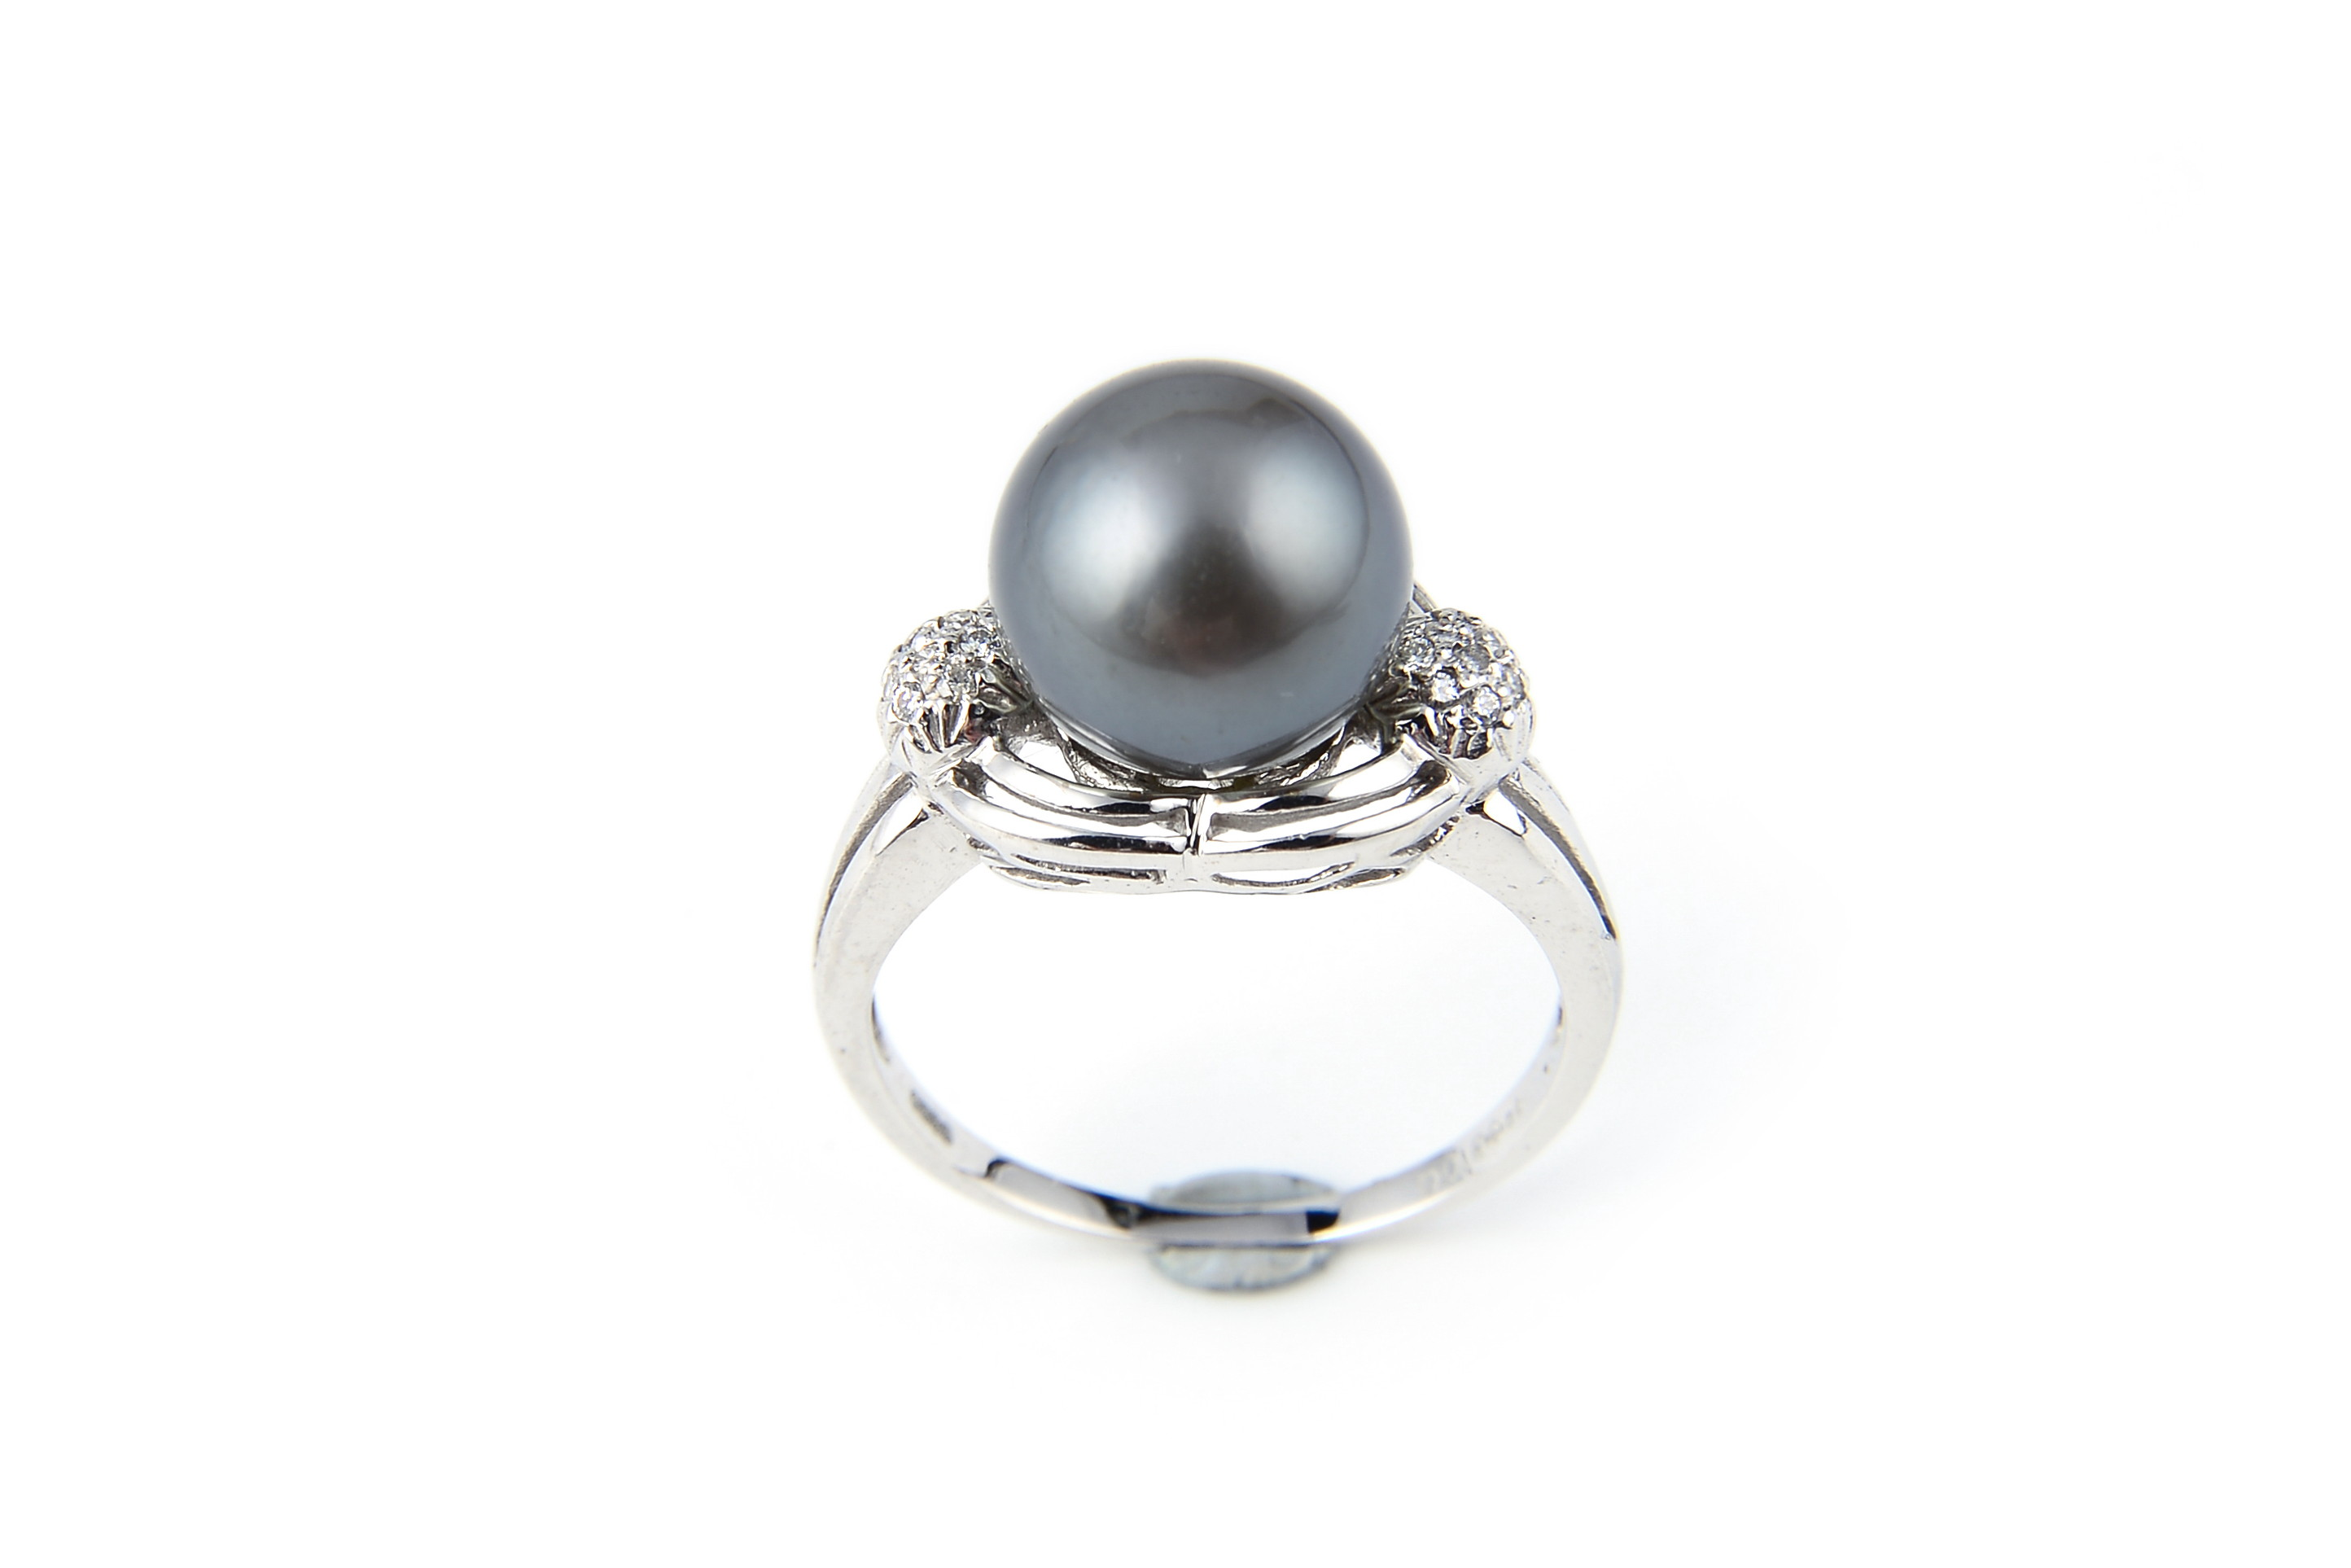 AAA+ Gem Quality Black Tahitian Pearl Ring W/ Diamonds -rg2